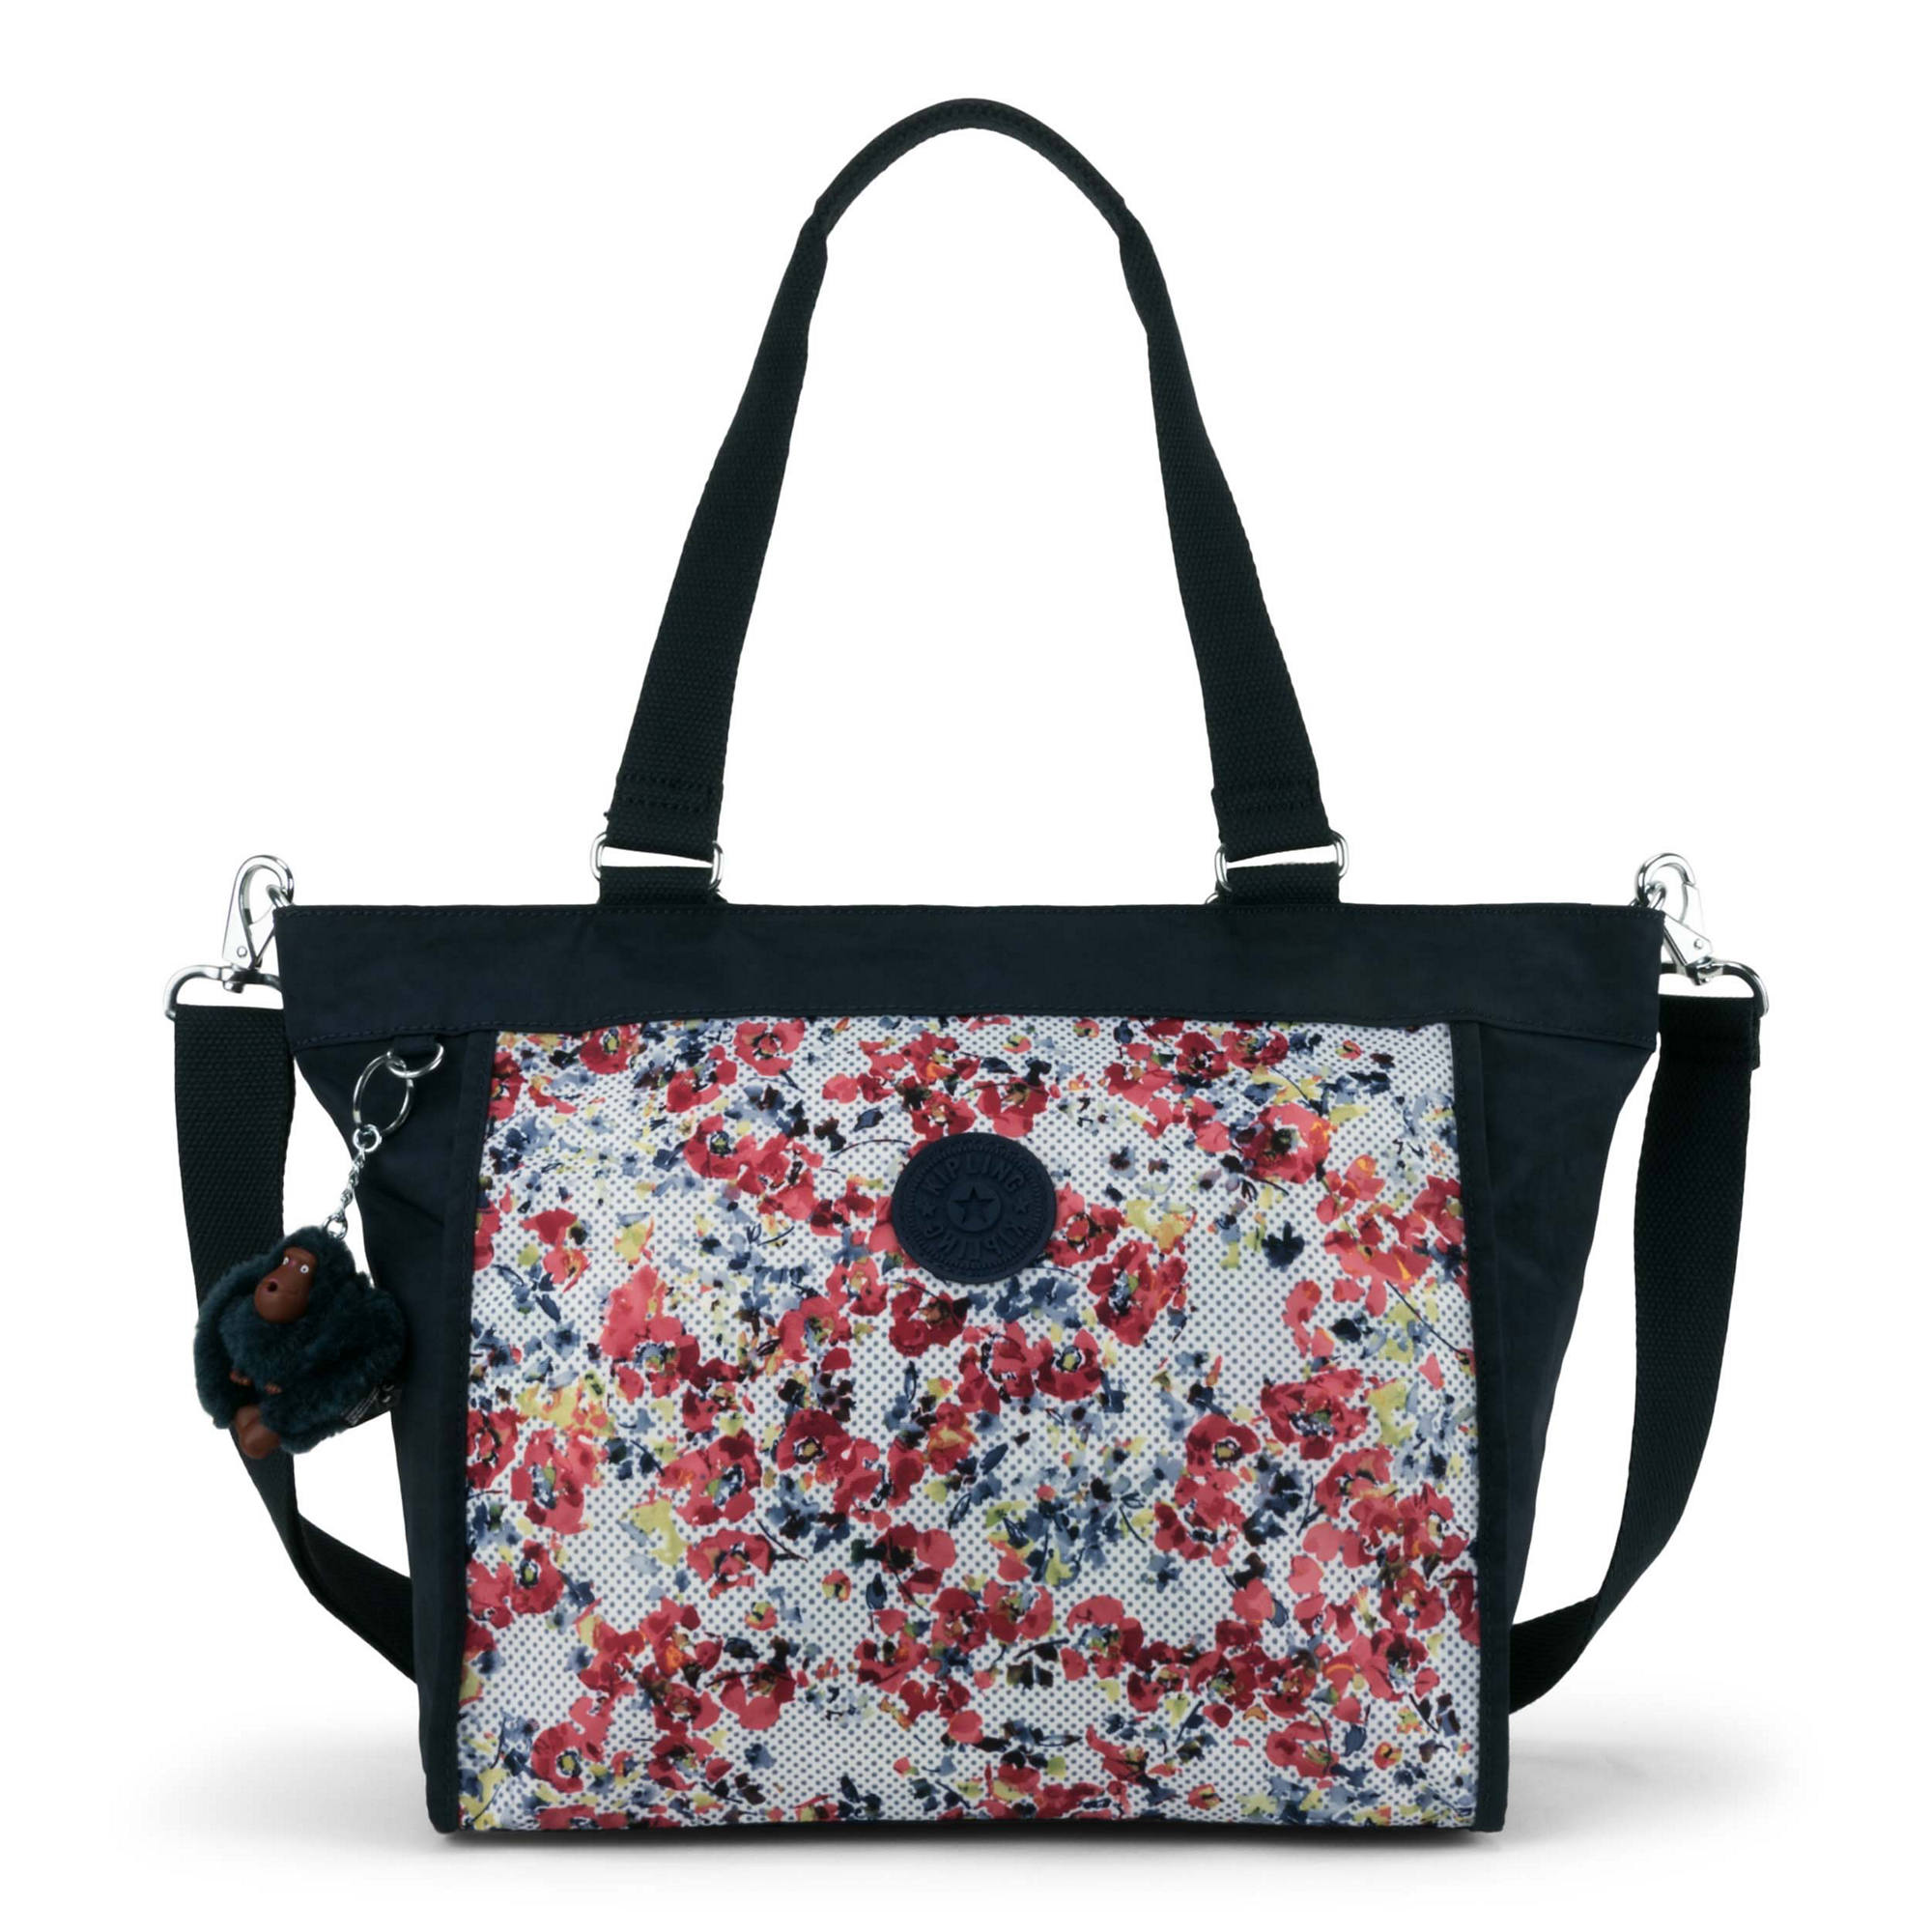 1bd0b096c3d New Shopper Small Printed Handbag,Busy Blossoms Blue Combo,large